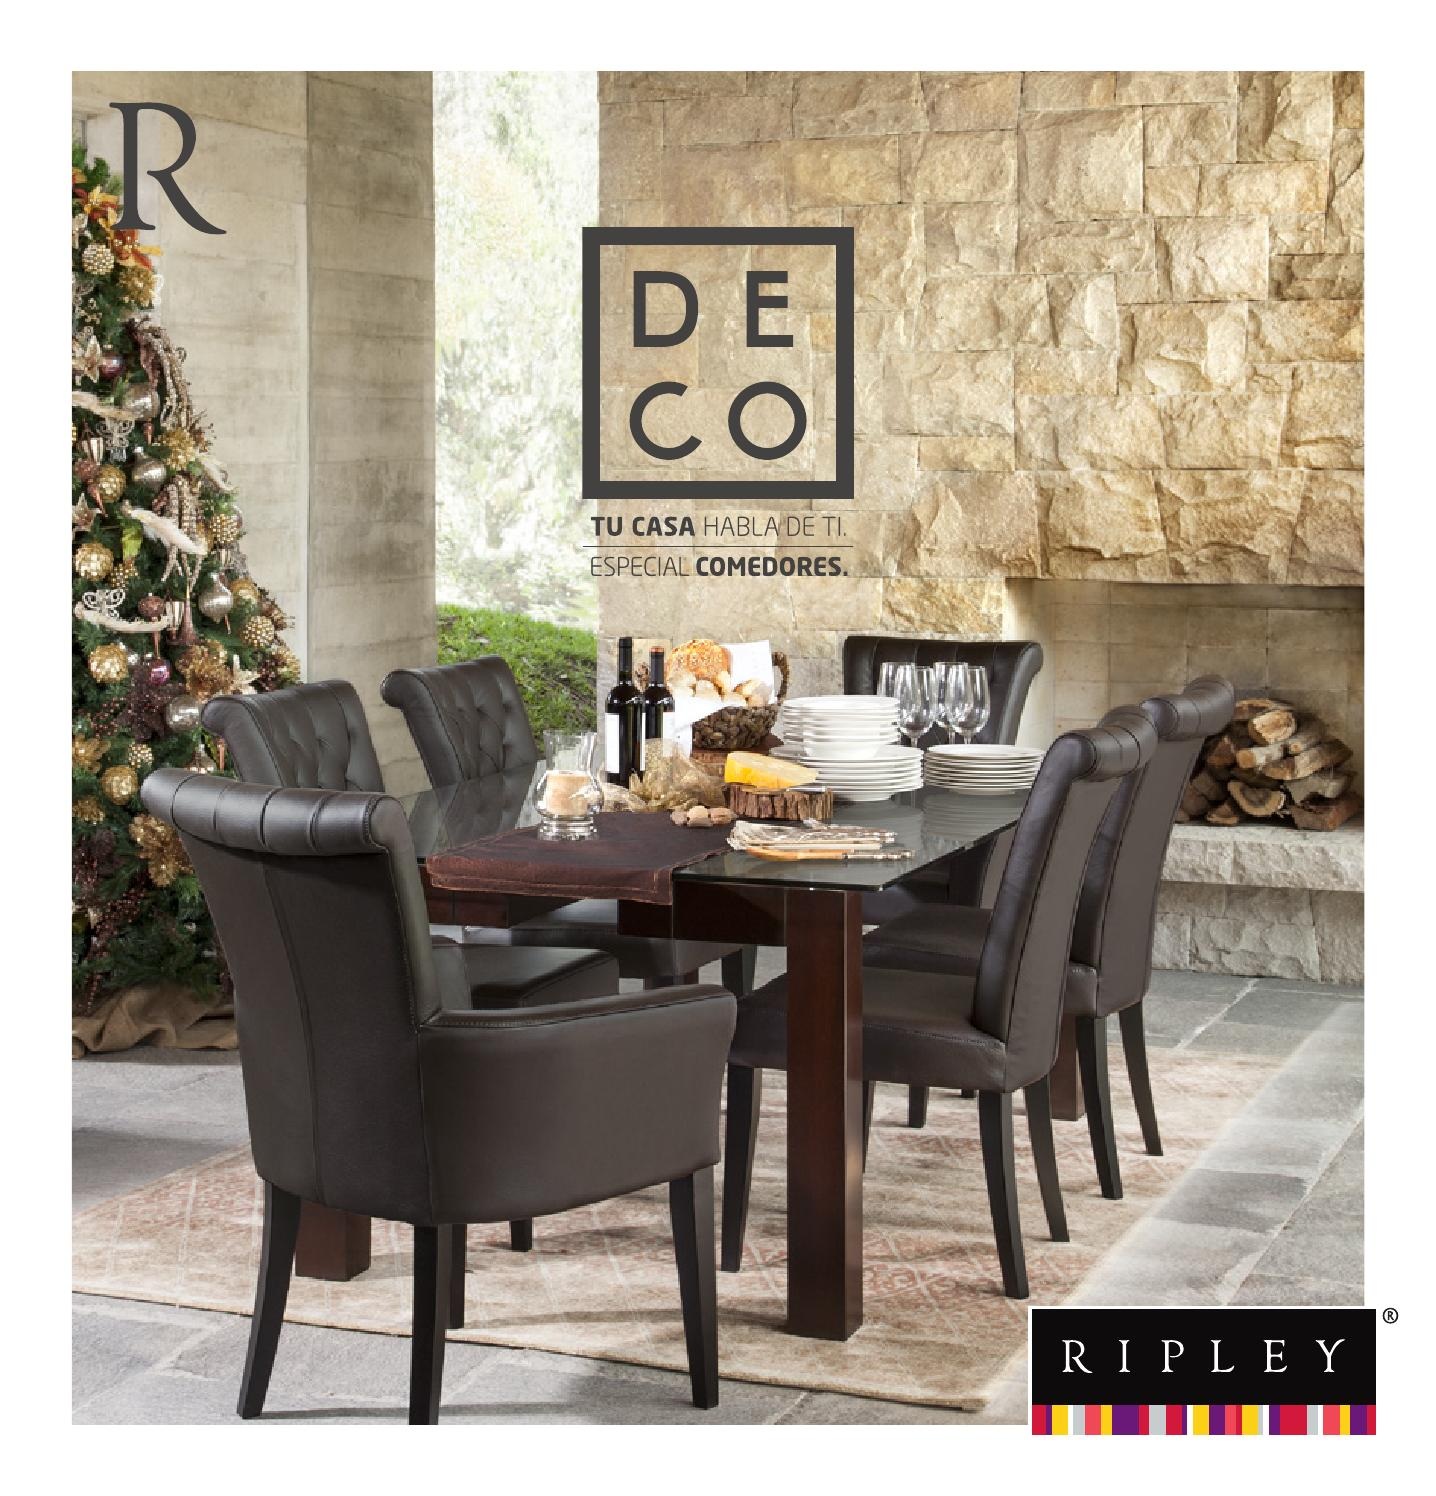 Deco especial comedores by ripley peru issuu for Muebles la sagra catalogo